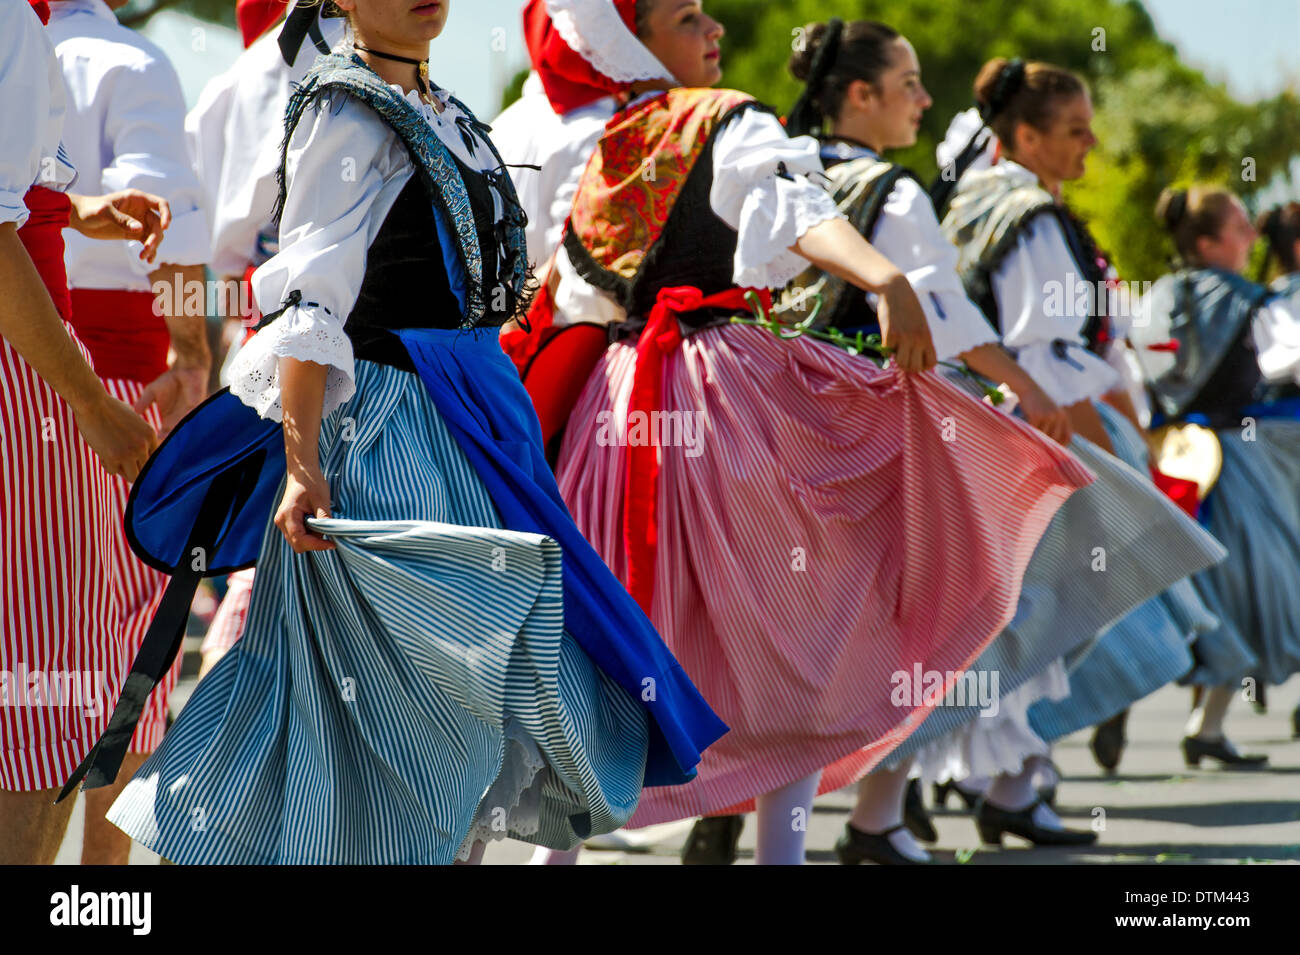 Europe, France, Alpes-Maritimes, Antibes. Traditional Provencal festival. Folk dance. - Stock Image